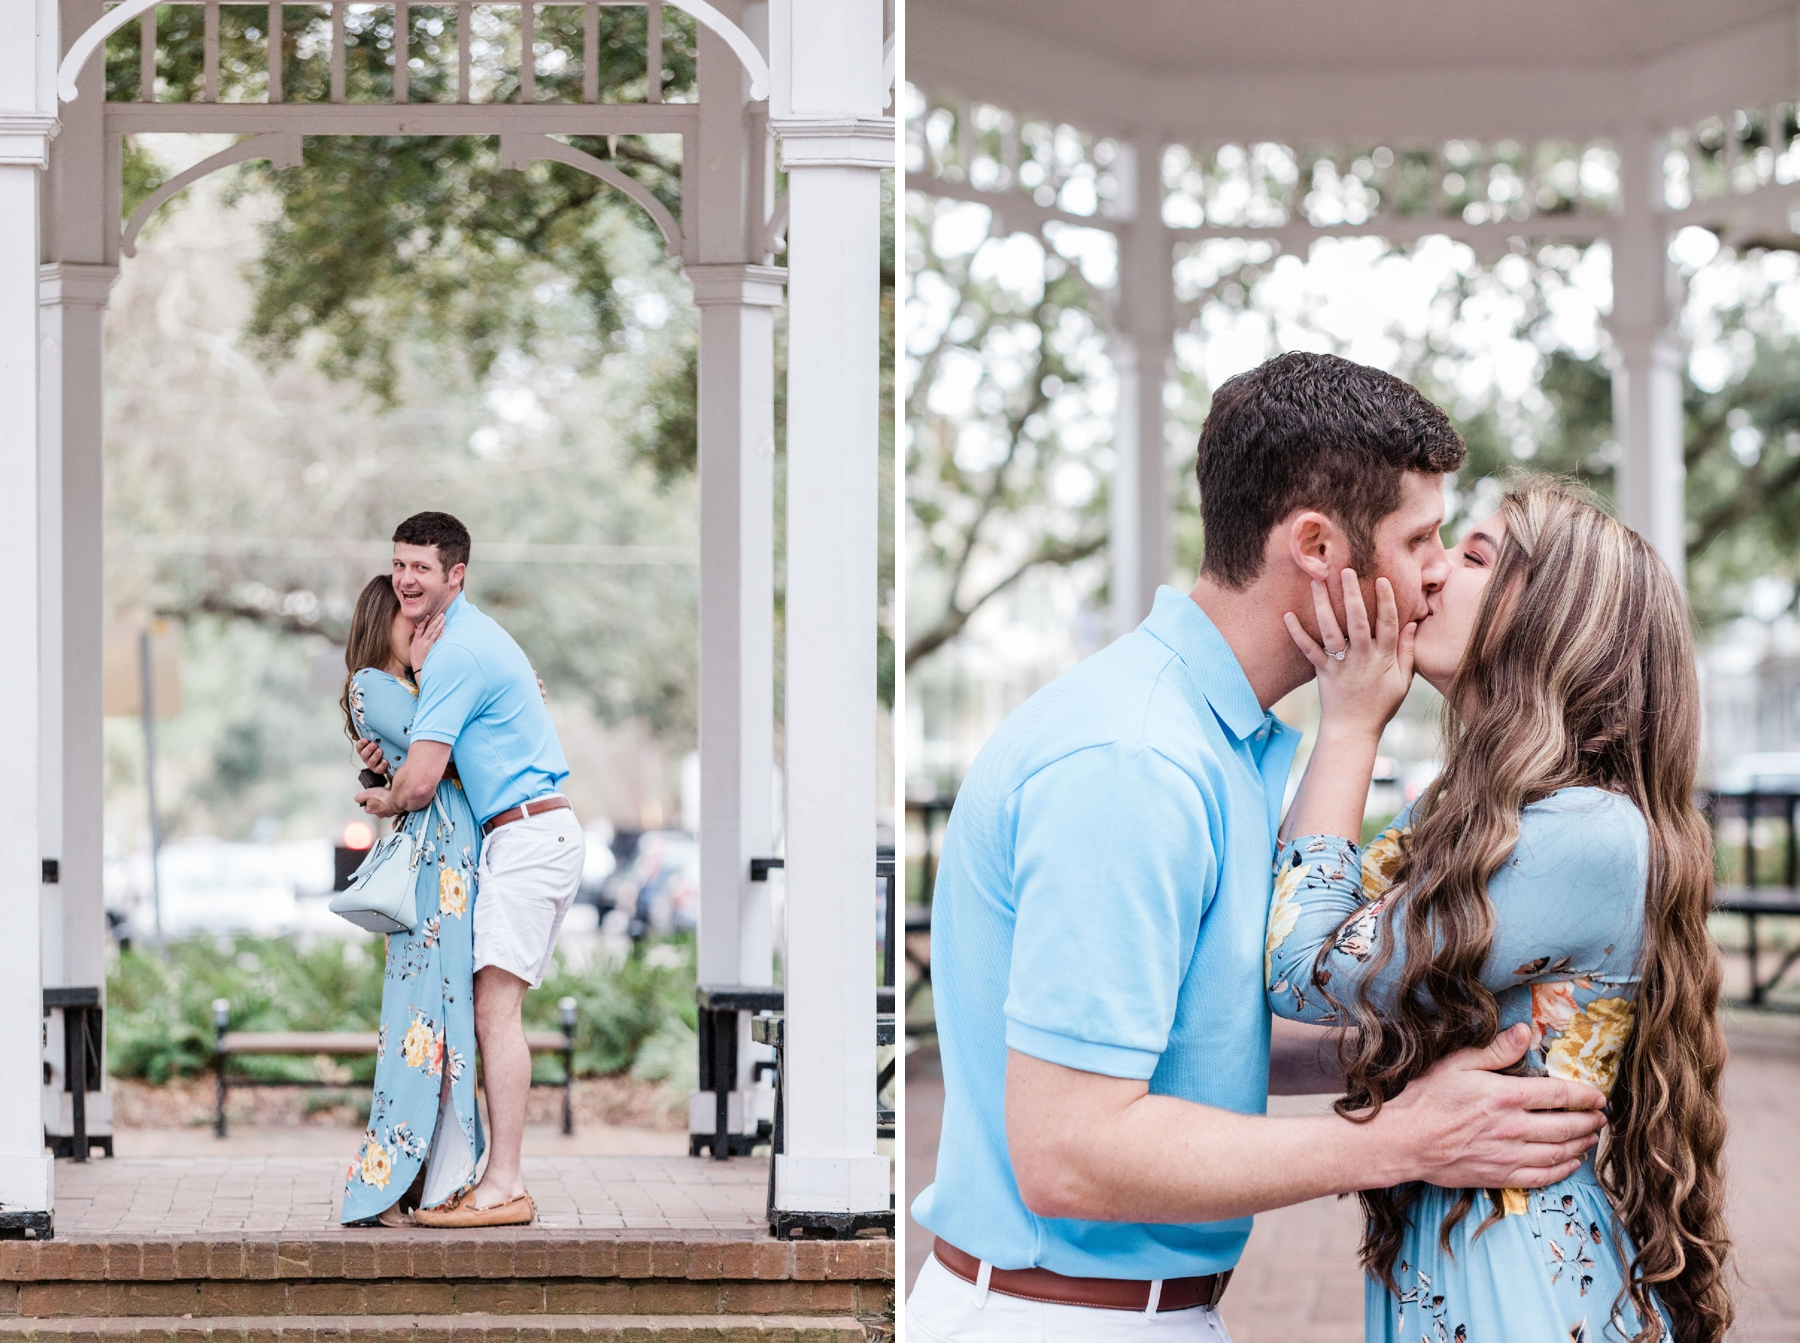 apt-b-photography-savannah-proposal-photographer-12.jpg